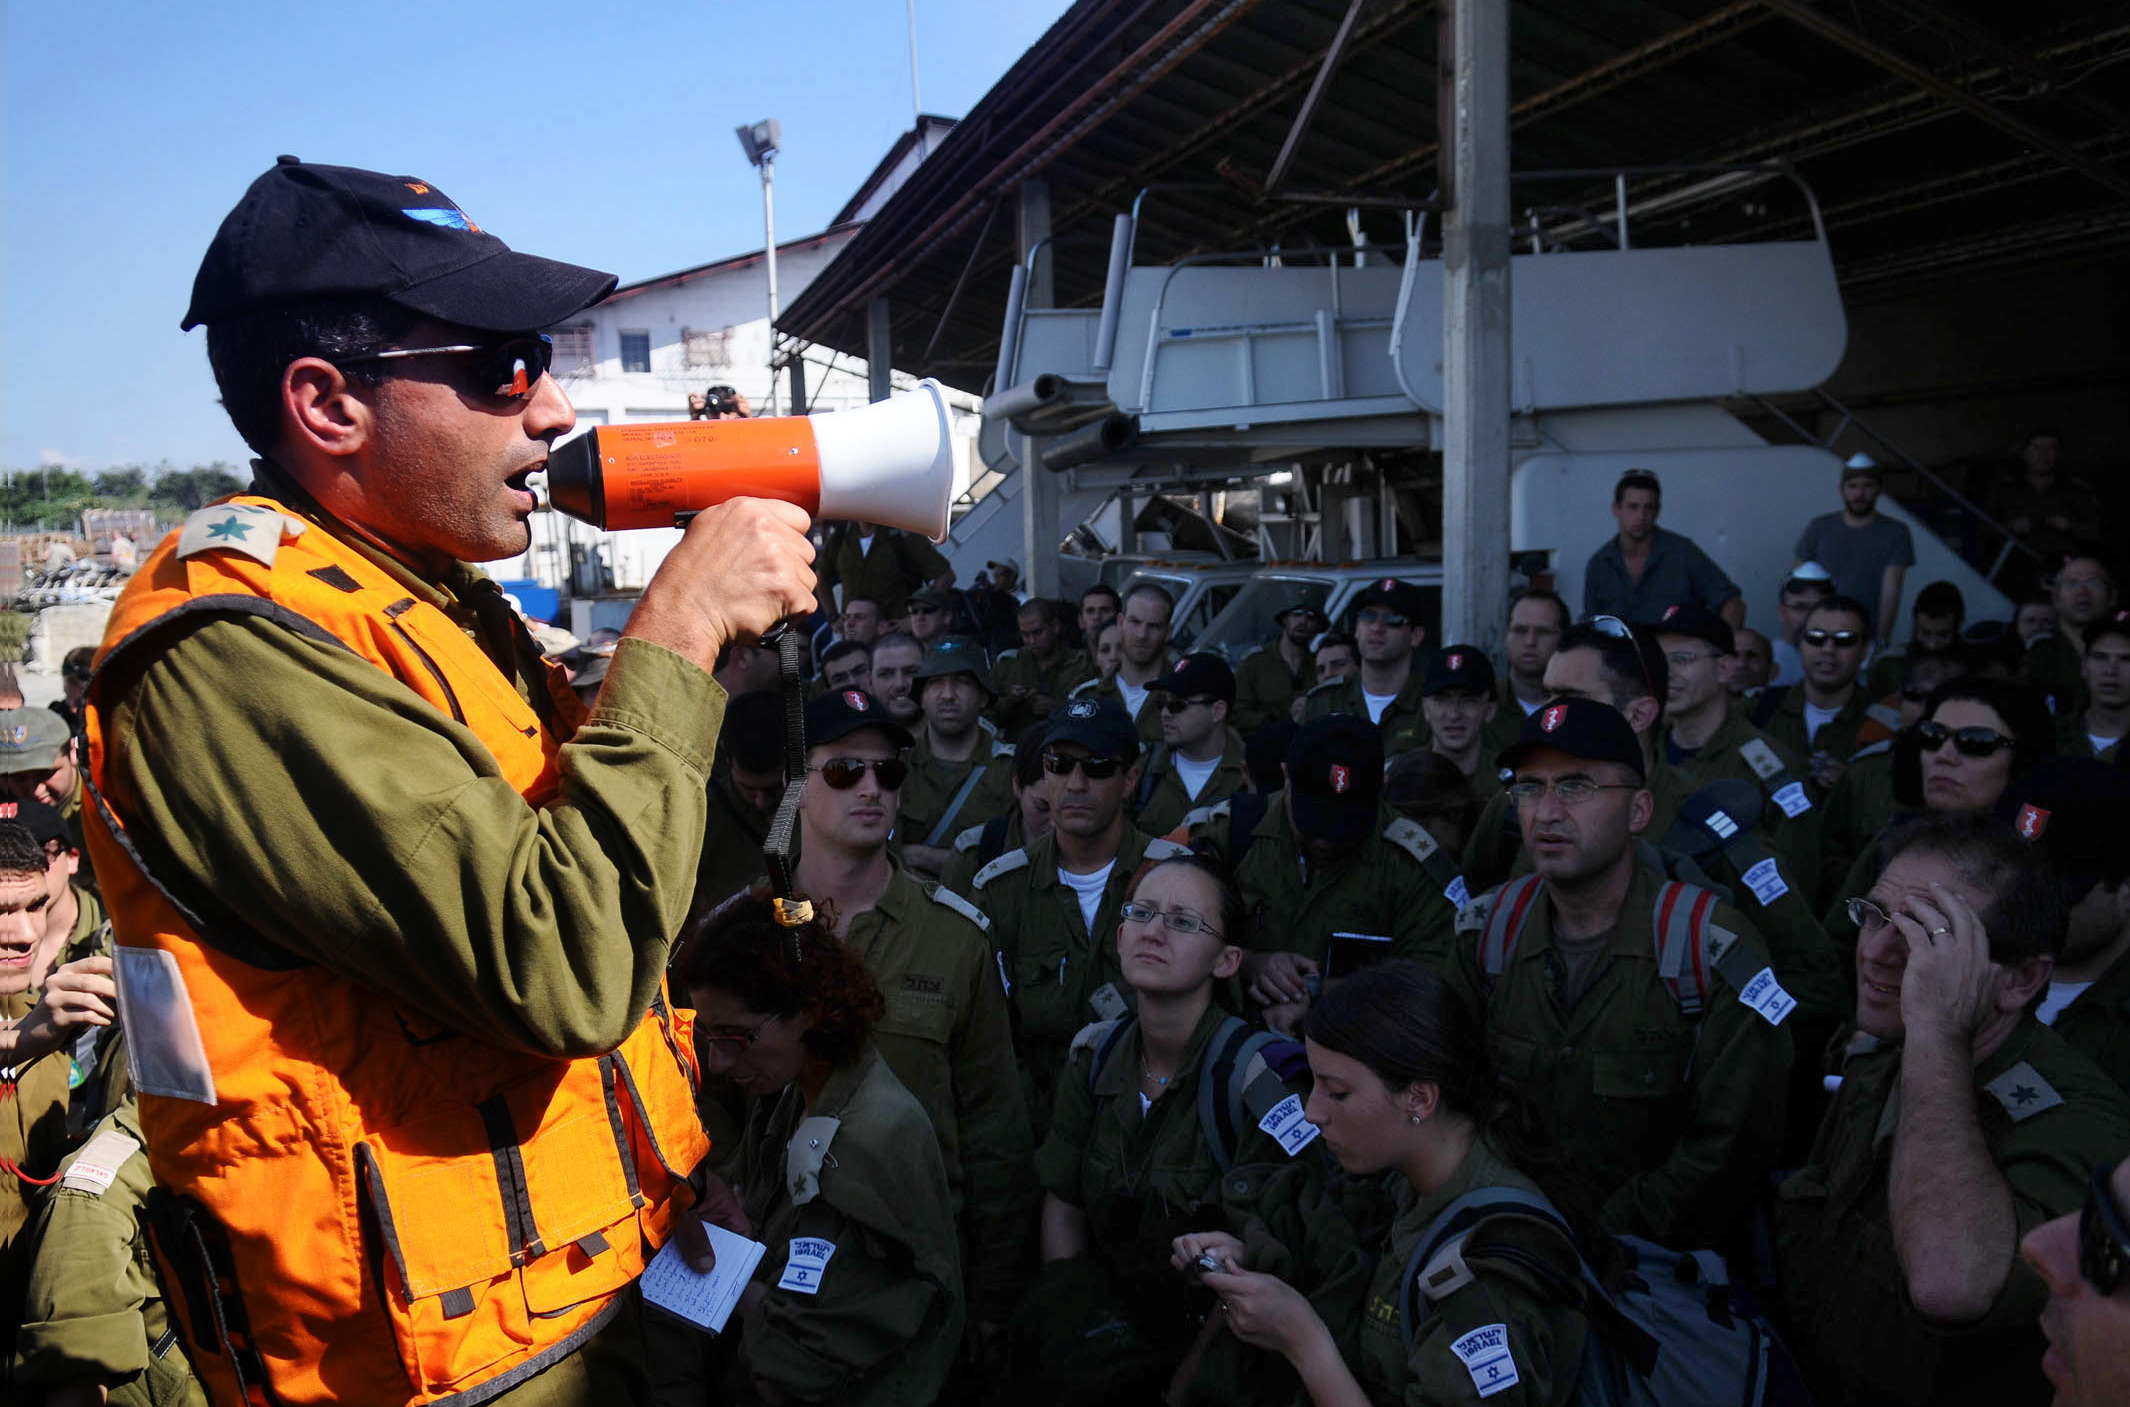 IDF aid delegation to Haiti